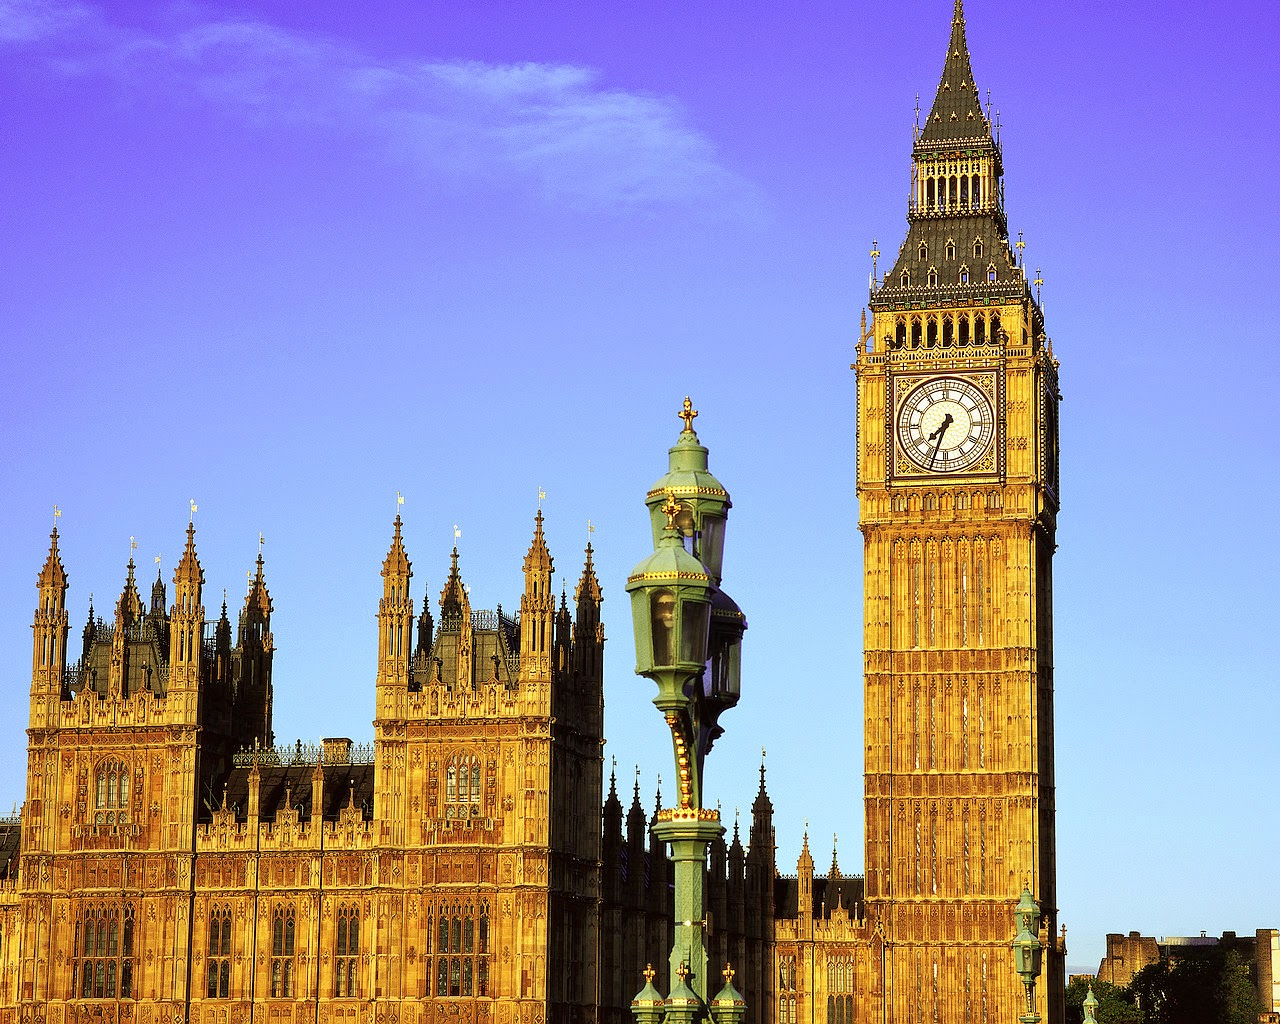 Big Ben, London - My Travel Bucket List